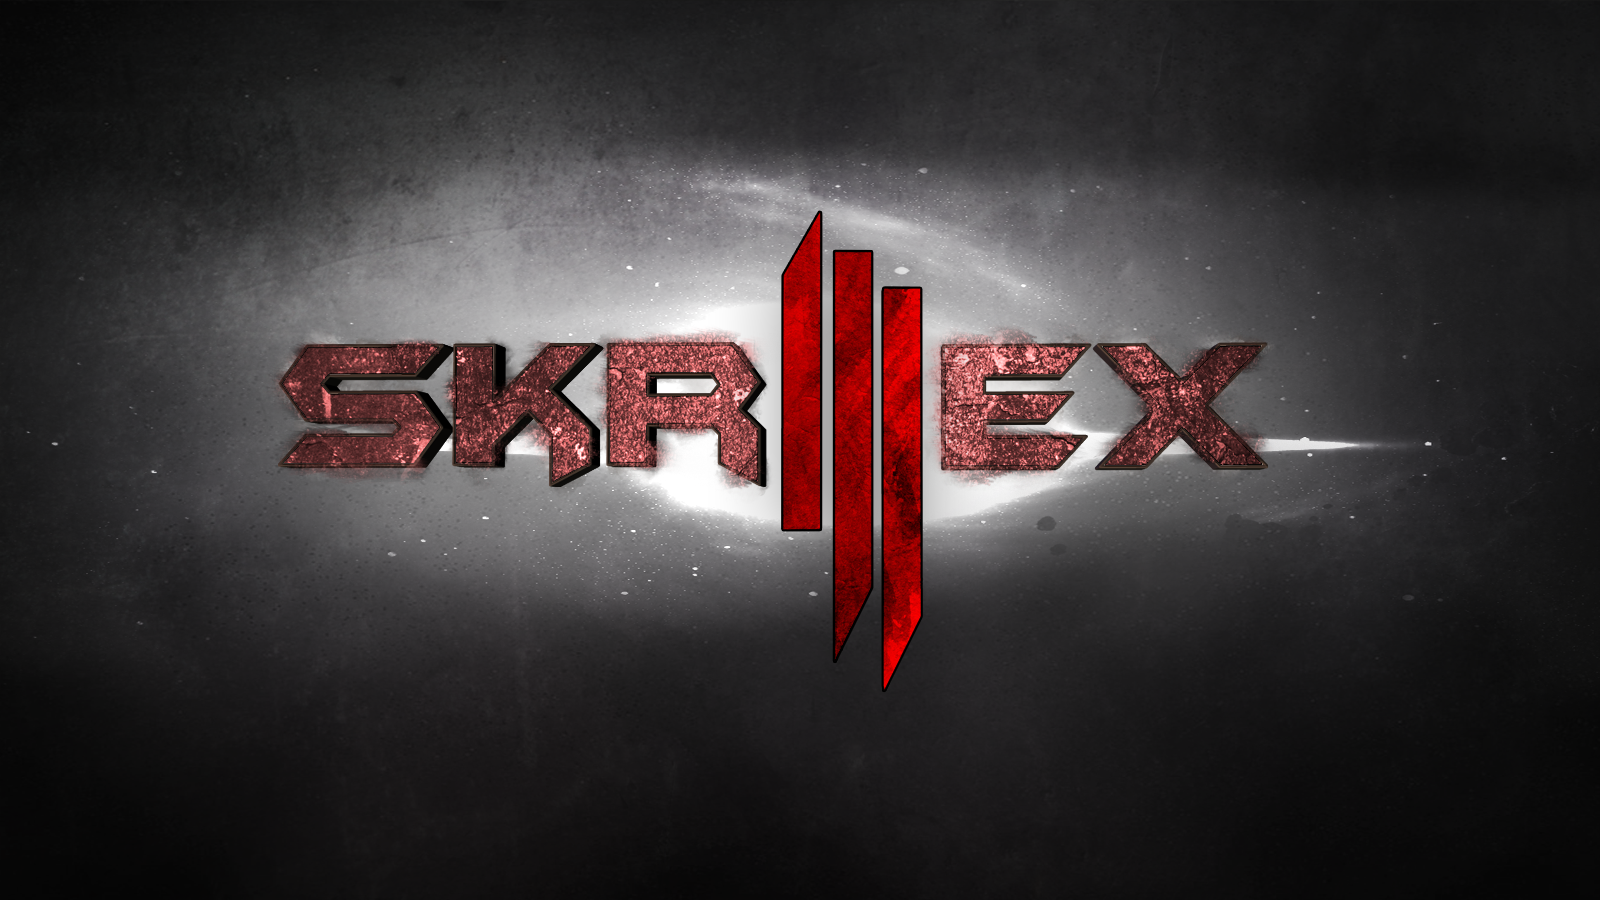 Skrillex Wallpaper · Skrillex Wallpaper · Skrillex Wallpaper ...